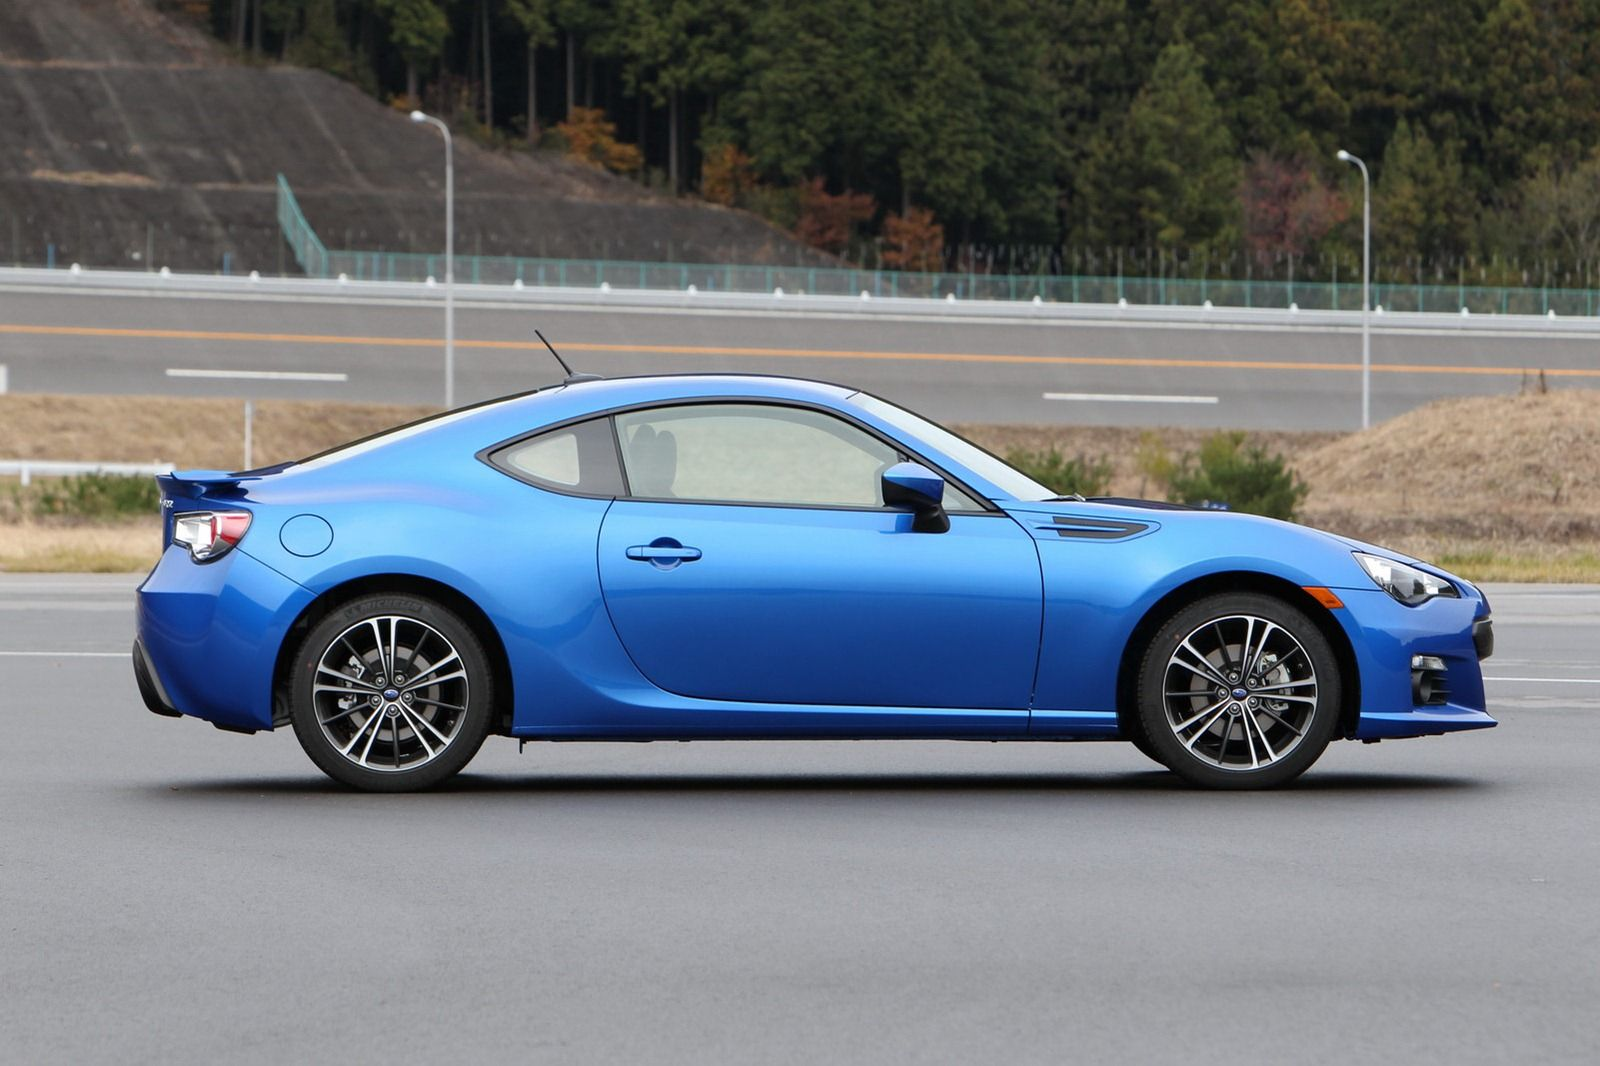 2013 #Subaru #BRZ prices ranging from $25,495 (€19,250) to $28,595